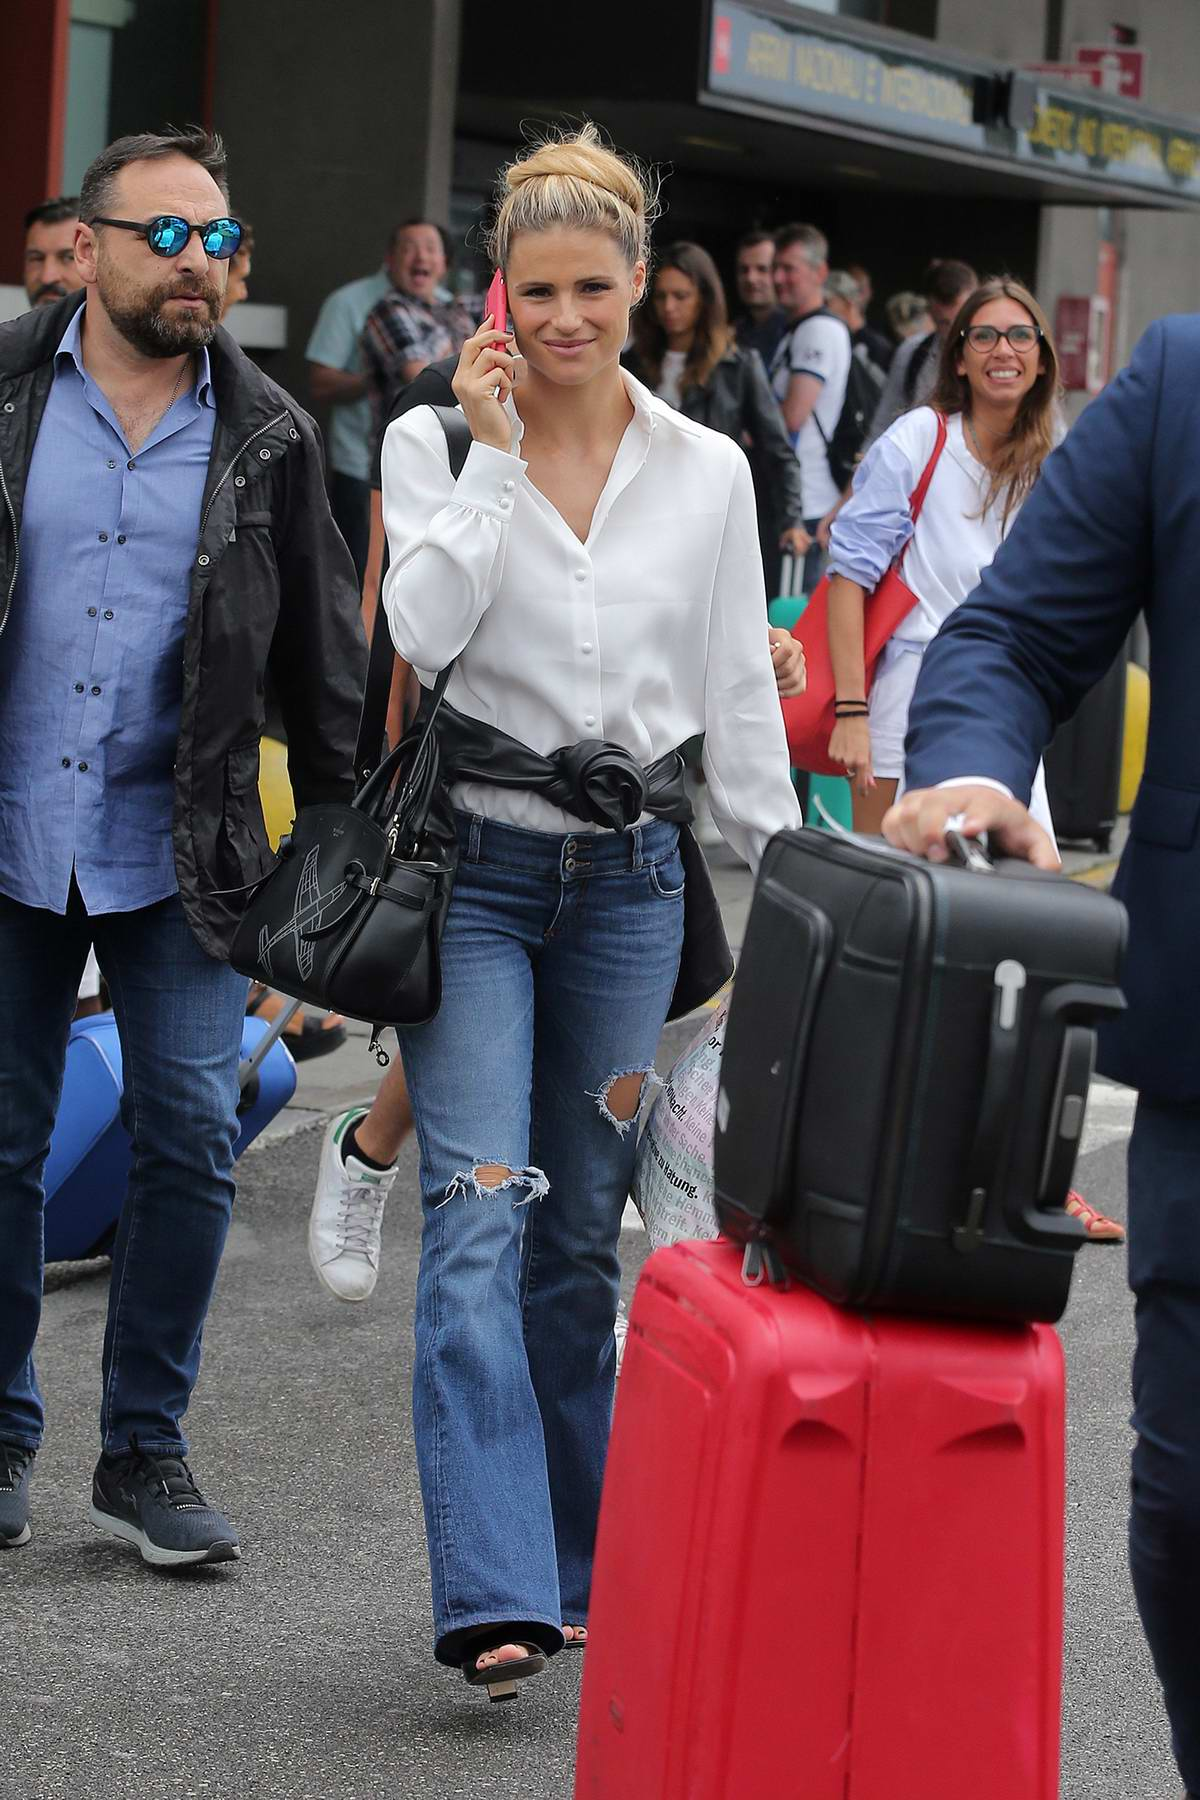 Michelle Hunziker spotted in a white shirt and ripped jeans as she arrives at the airport in Milan, Italy